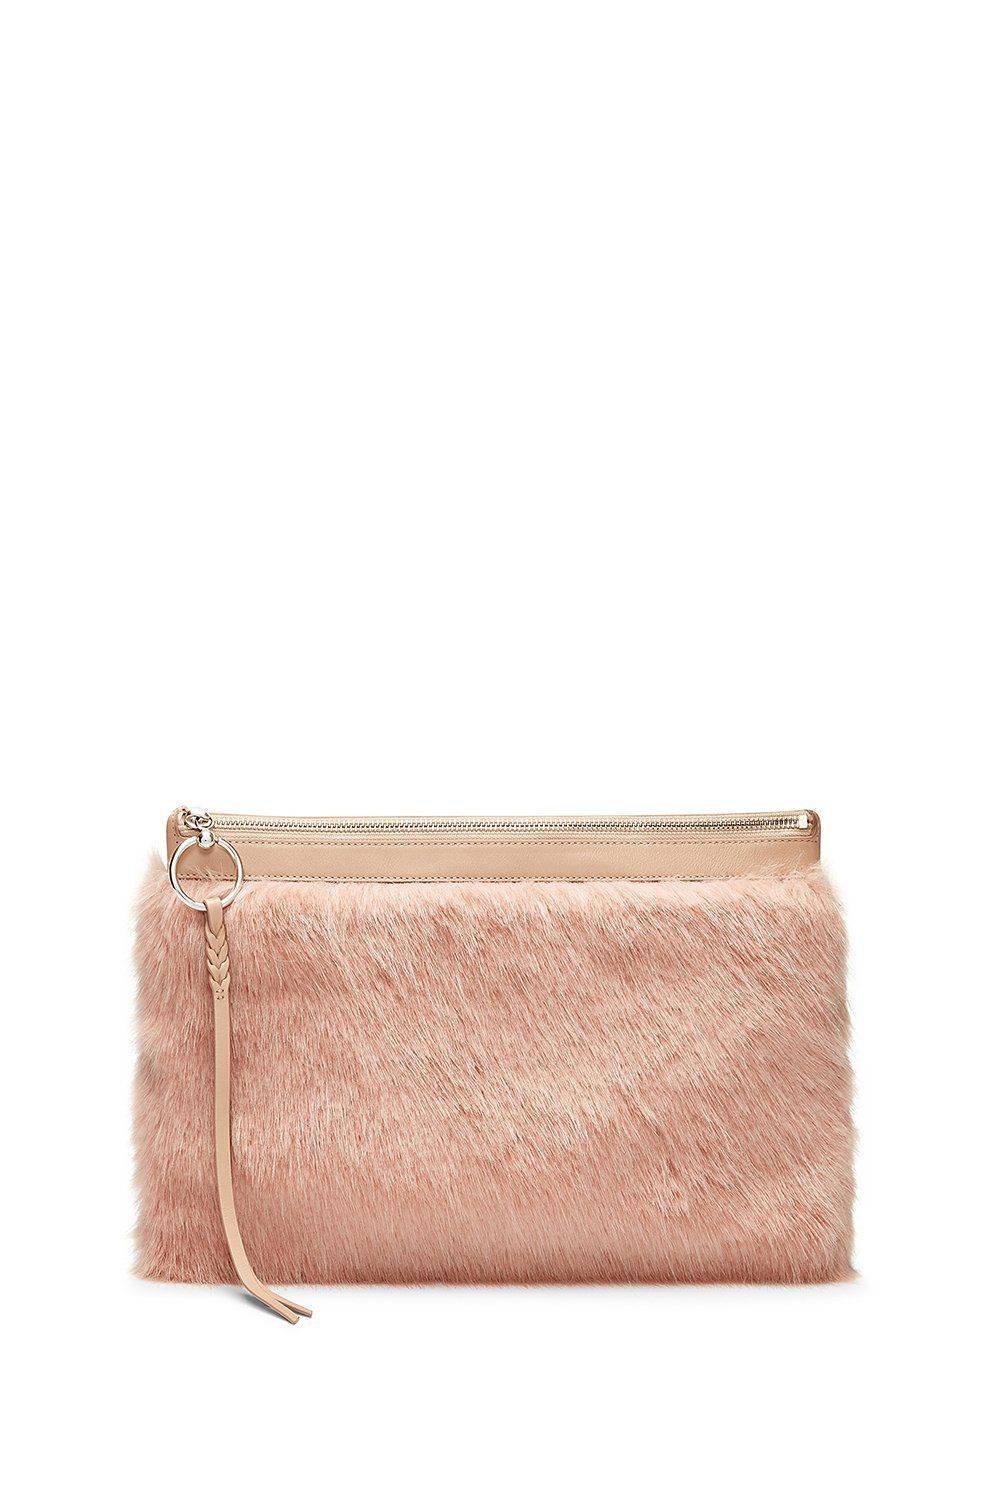 Luxury Cowhide And Leather Clutch Bag Essential Accessories For 2019